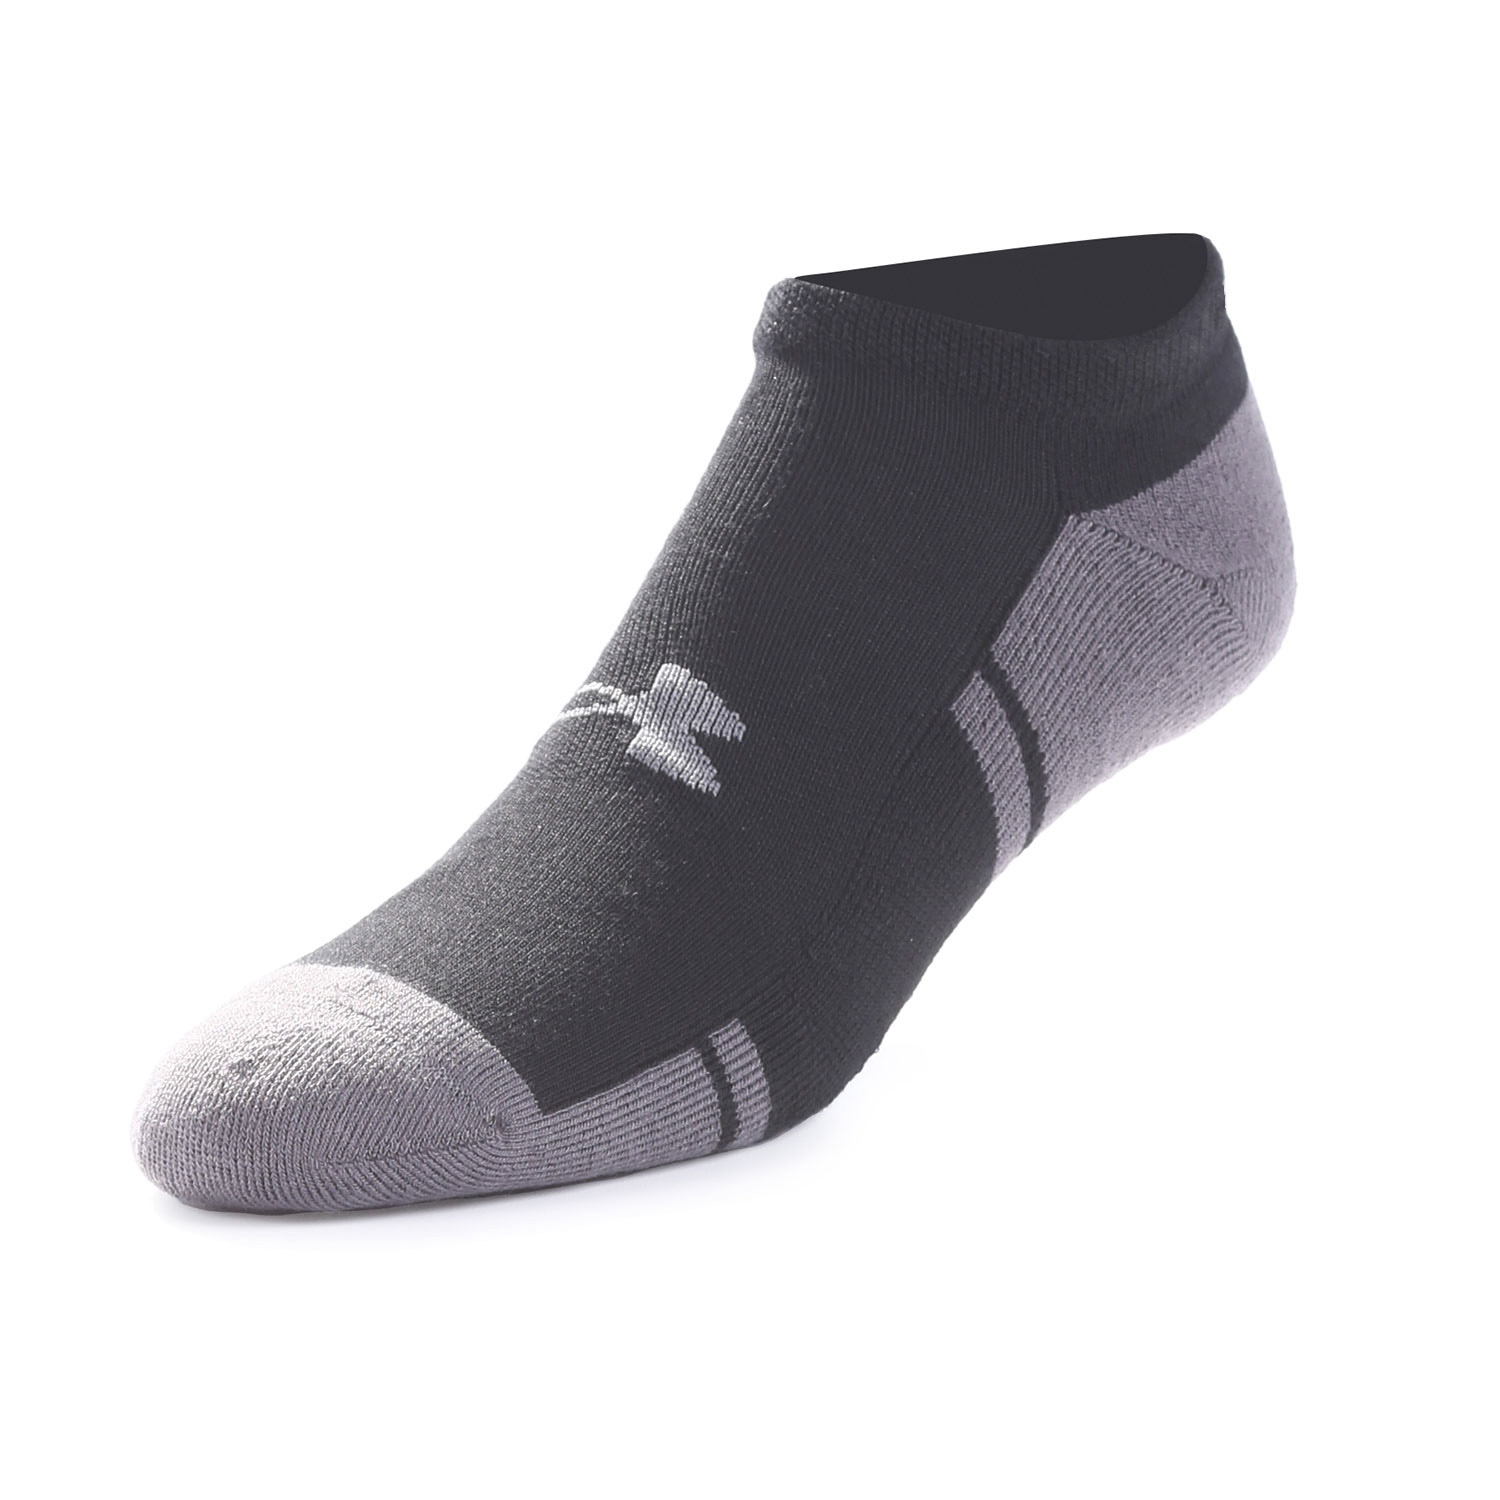 ac6fd25dc Under Armour Resistor 3.0 No Show Sock 6 Pack